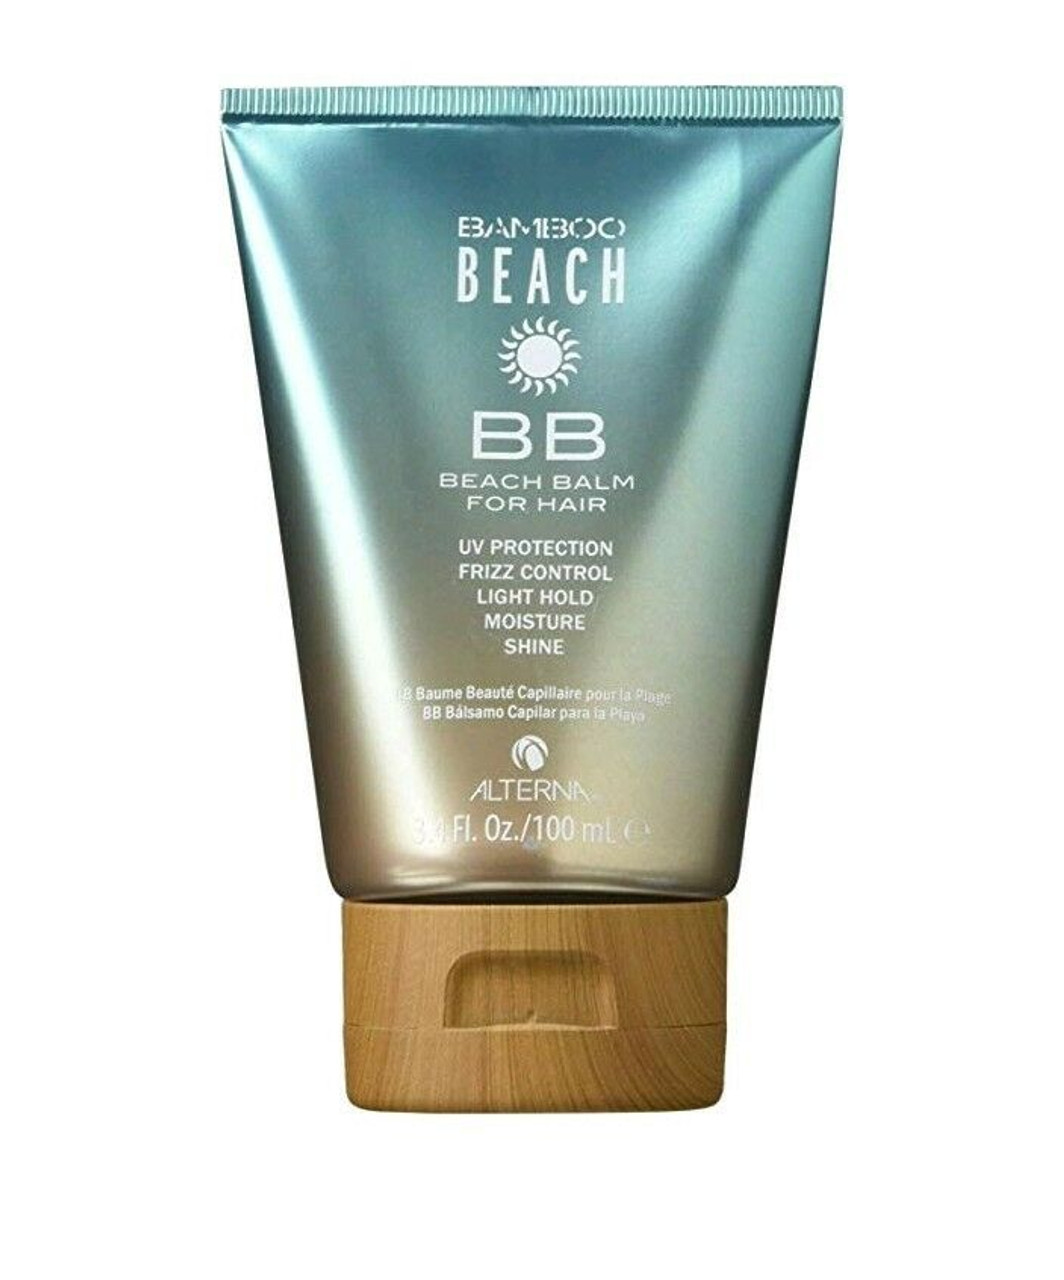 Alterna Bamboo Beach Balm 3.4 Oz